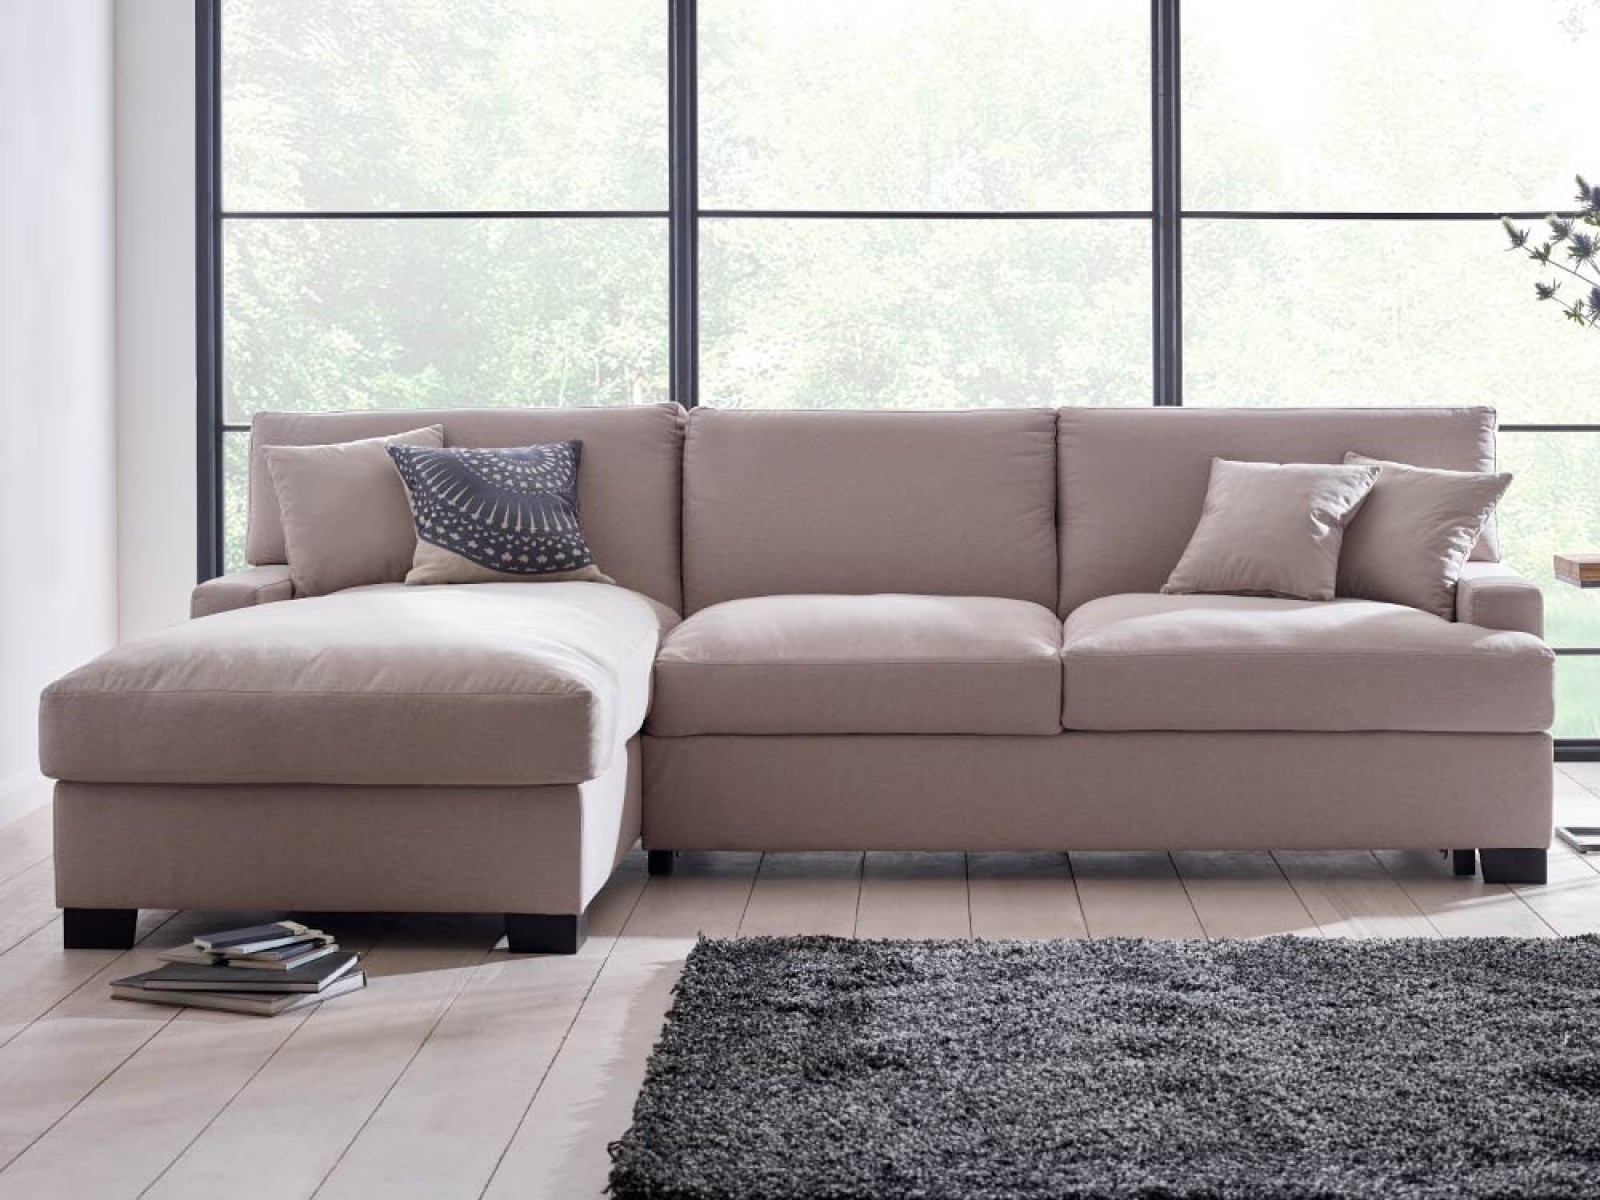 Well Known Jysk Sectional Sofas With Regard To Sofa : Jysk Corner Sofa Bed Corner Sofa Bed Green Corner Sofa Bed (View 20 of 20)